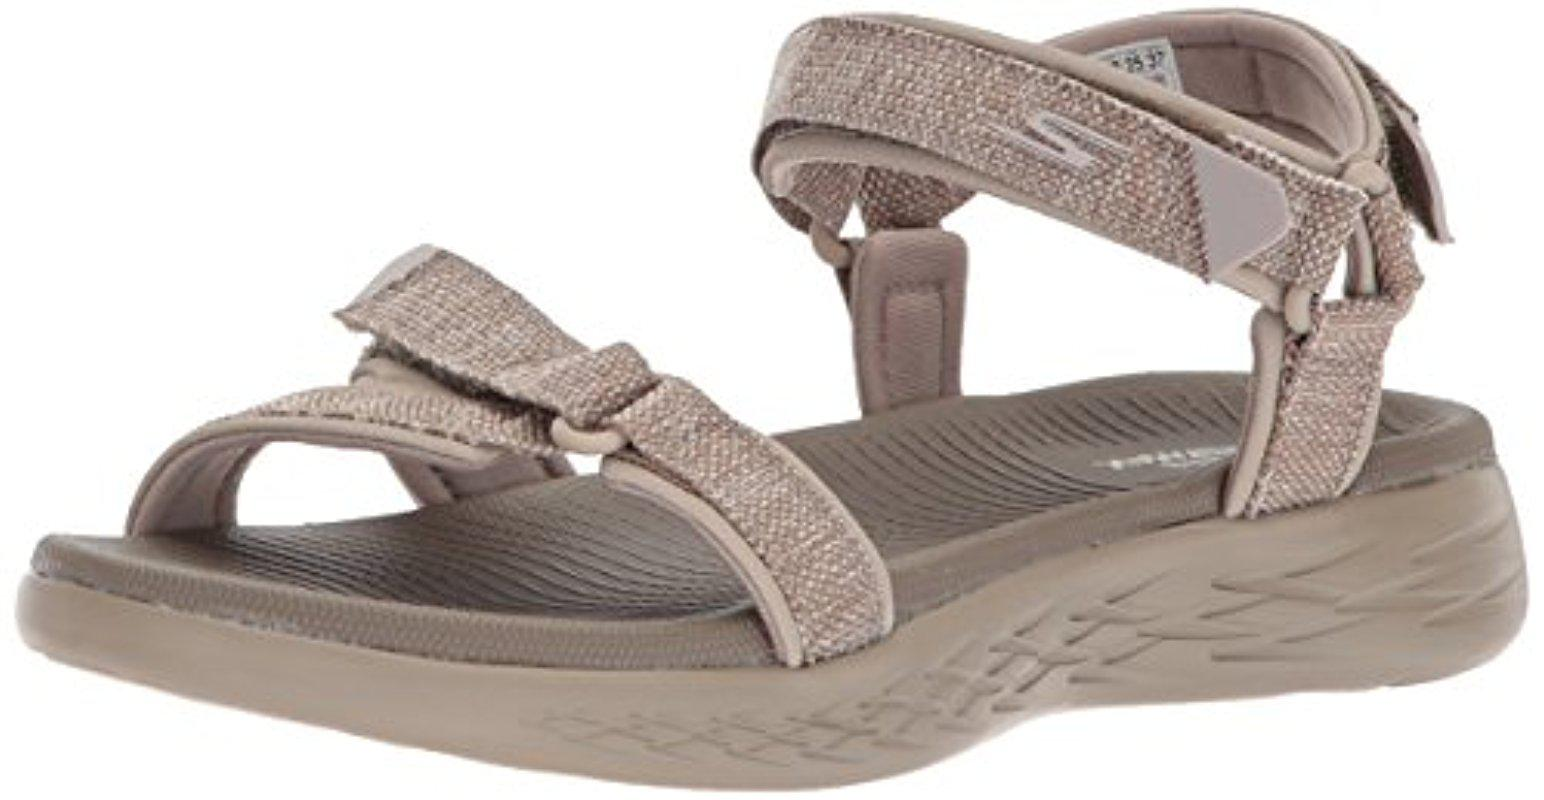 58a447d38bb8 Lyst - Skechers On-the-go 600-15315 Sport Sandal - Save 48%